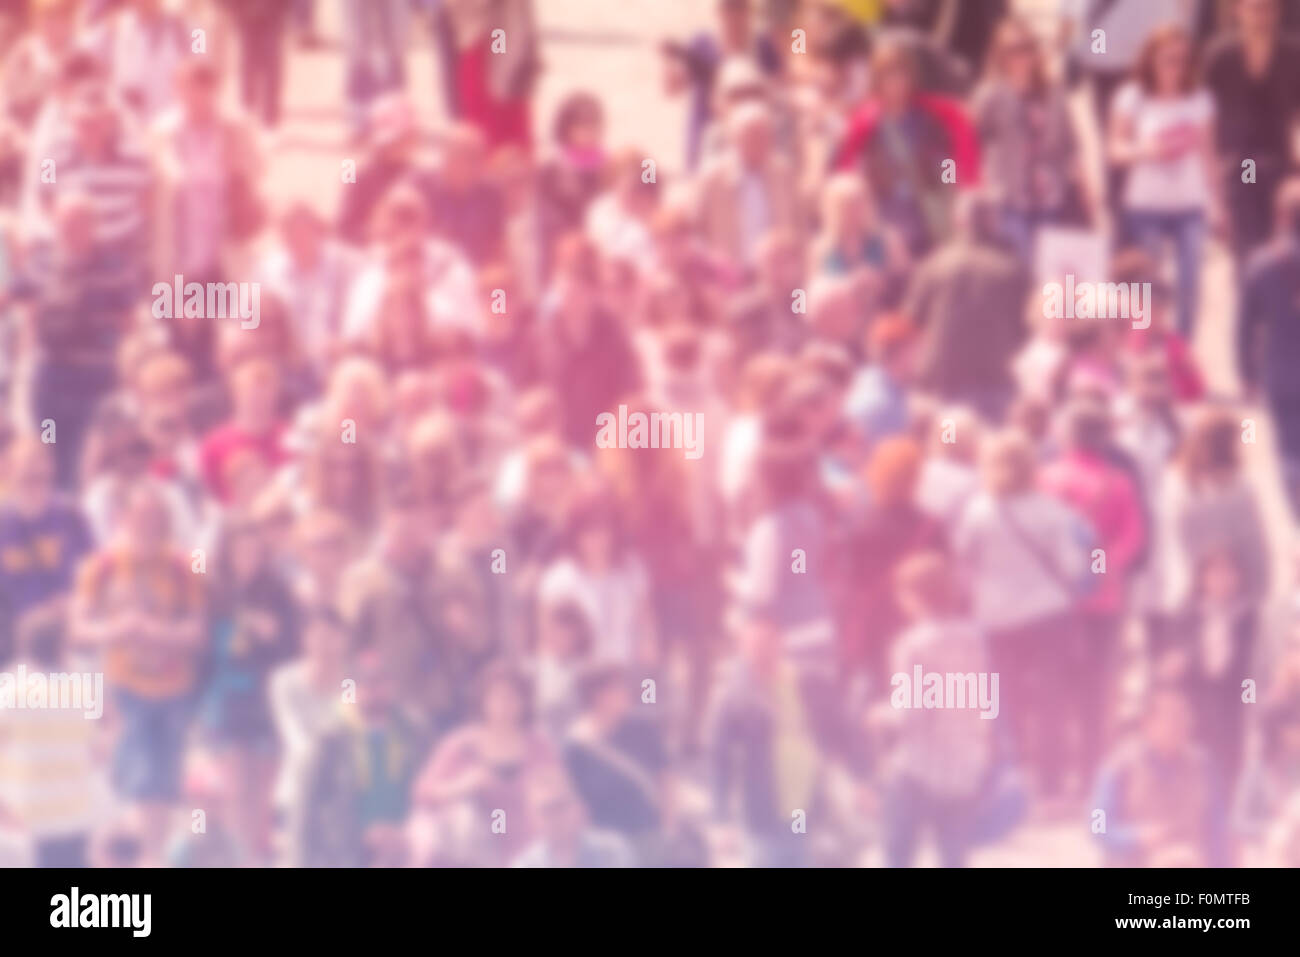 General Public Opinion Blur Background, Aerial View with Unrecognizable Crowded Population Out of Focus, Blurred - Stock Image